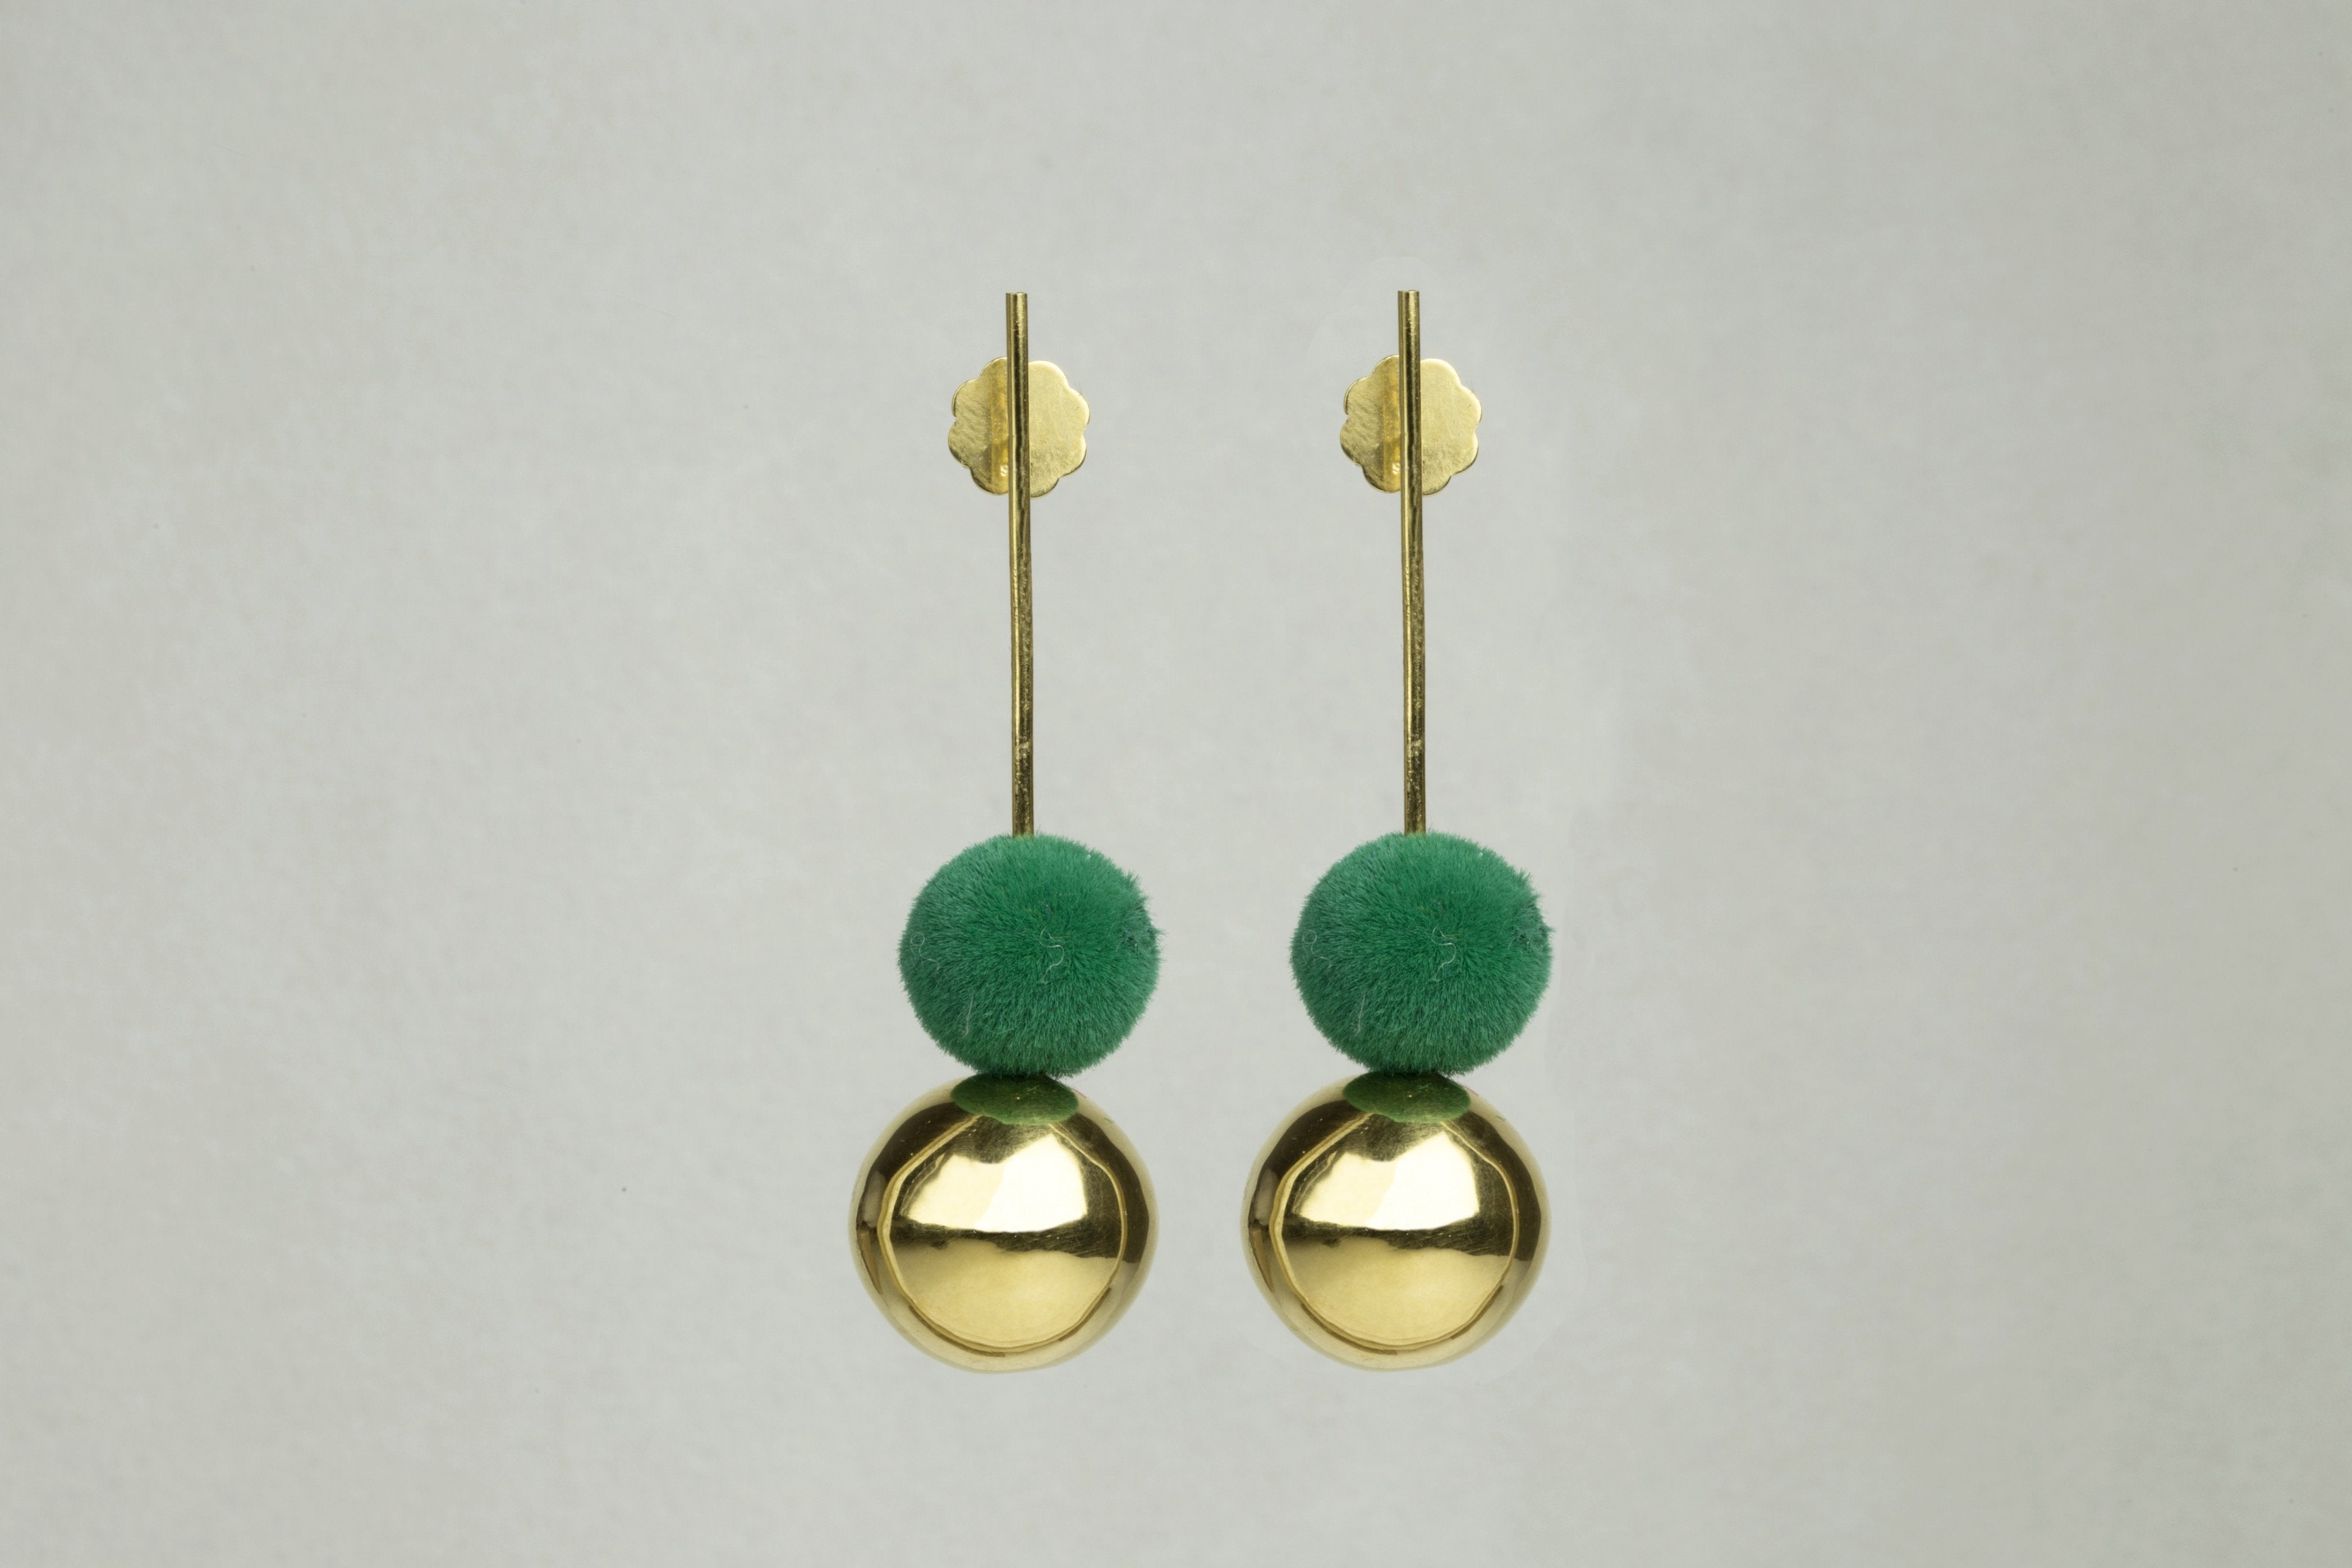 Pompom Earrings with Green Flocking also available on feltlondon.com